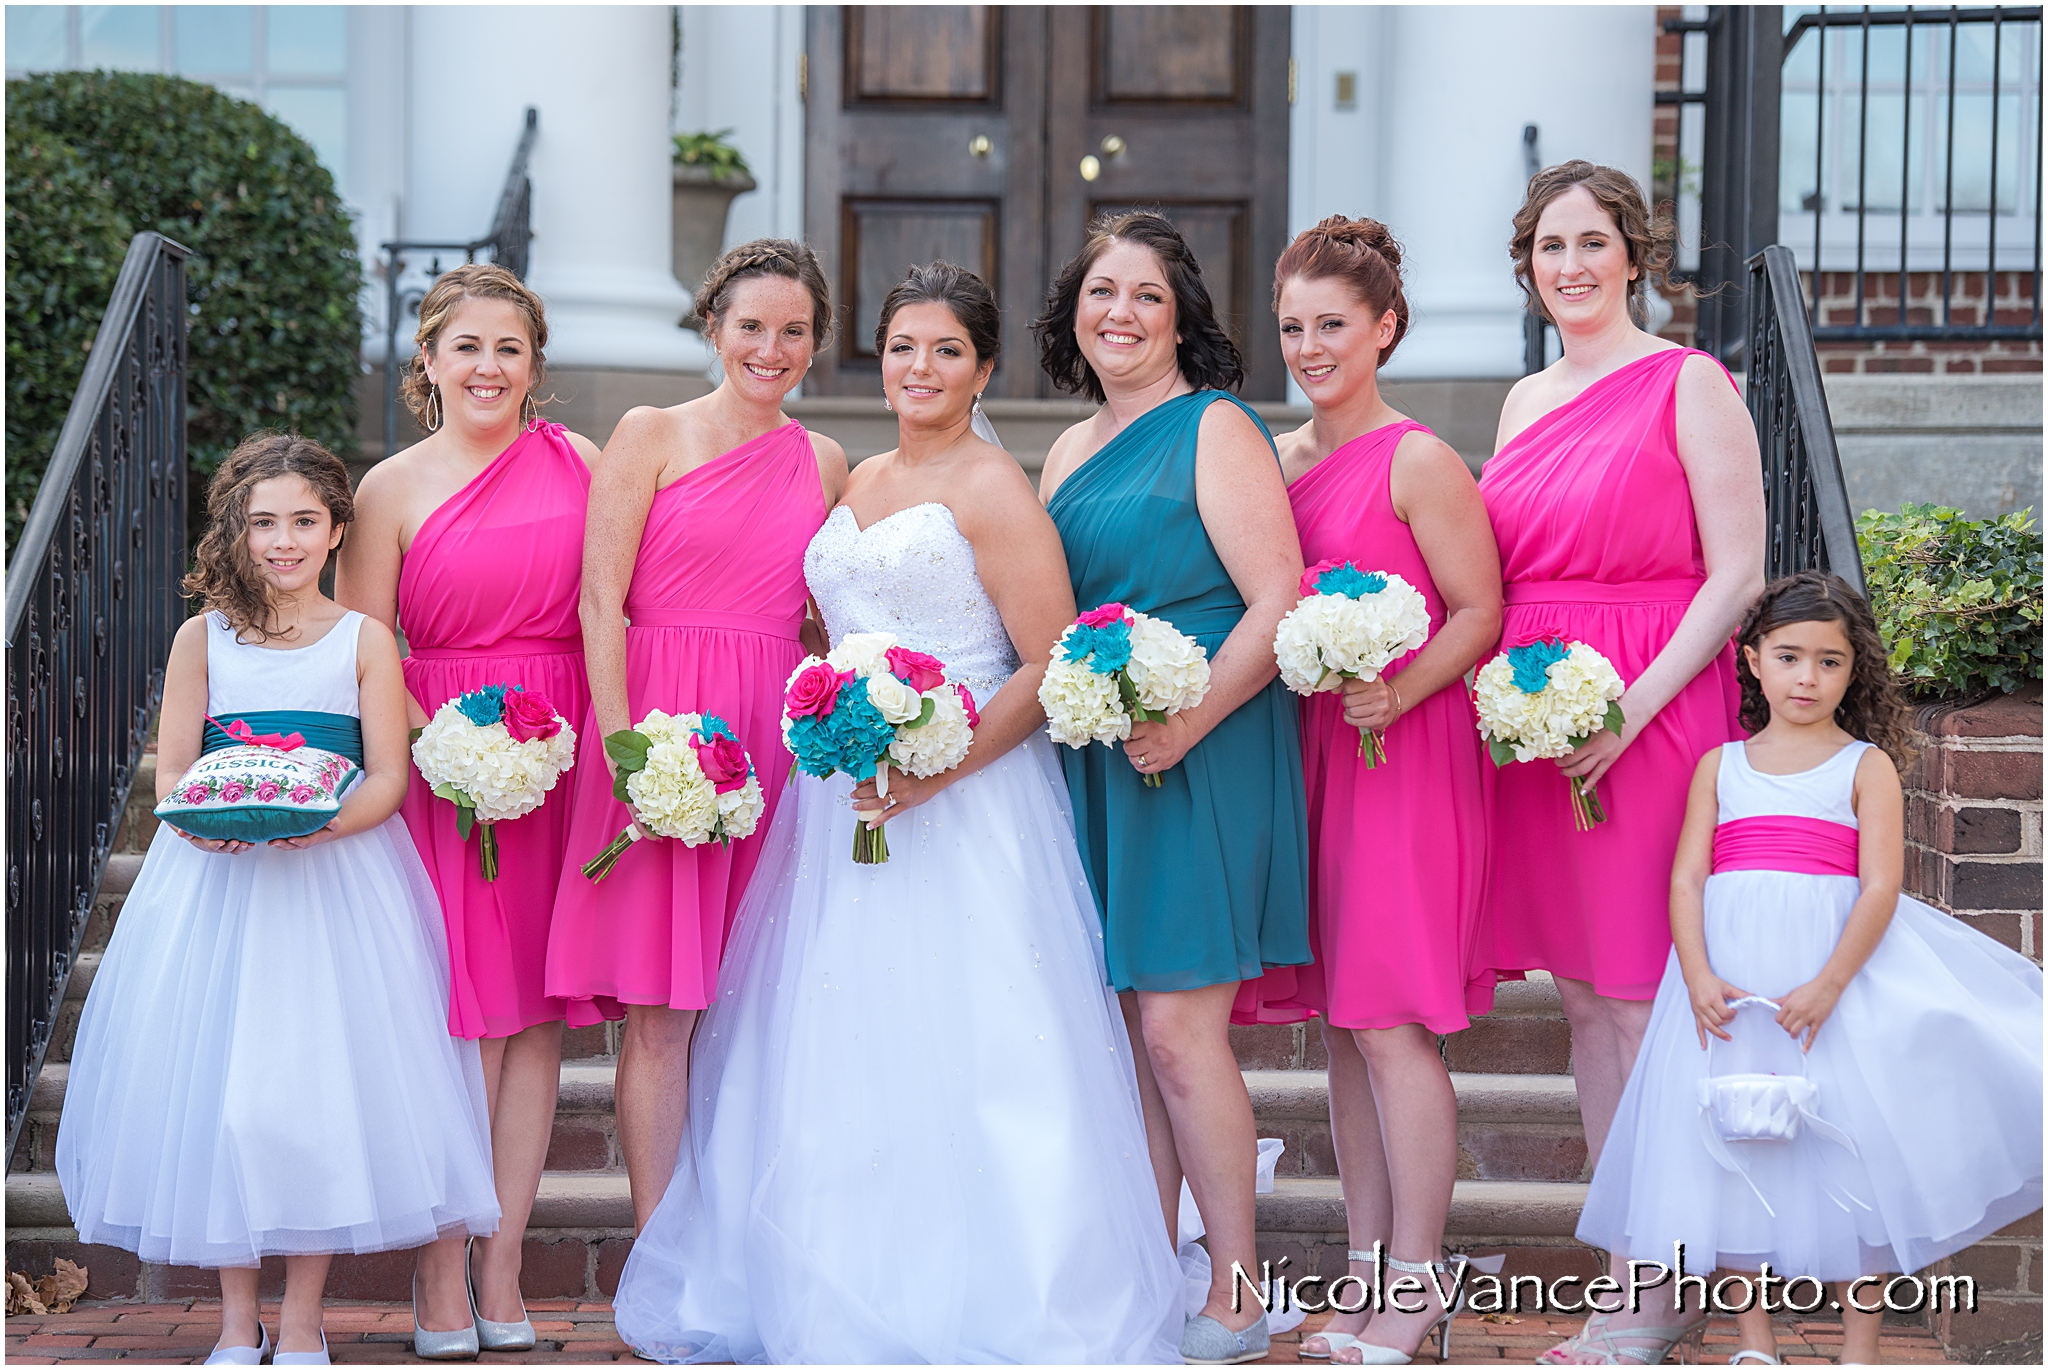 Bridal party portrait on the steps at Virginia Crossings.